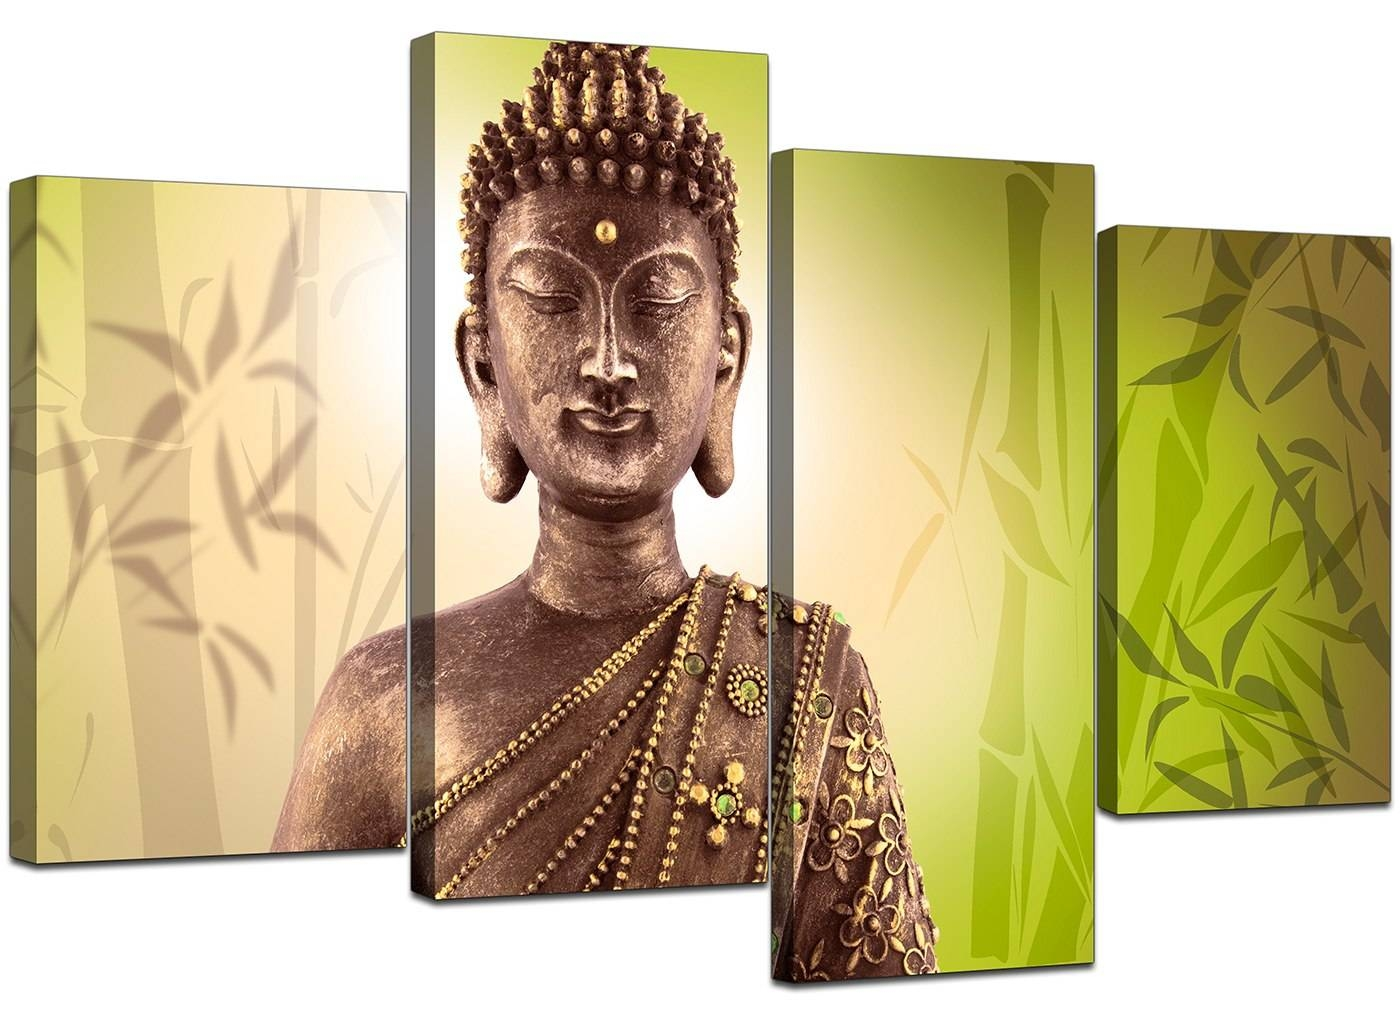 Canvas Art Of Buddha In Green For Your Living Room Regarding 2018 Large Buddha Wall Art (View 11 of 15)